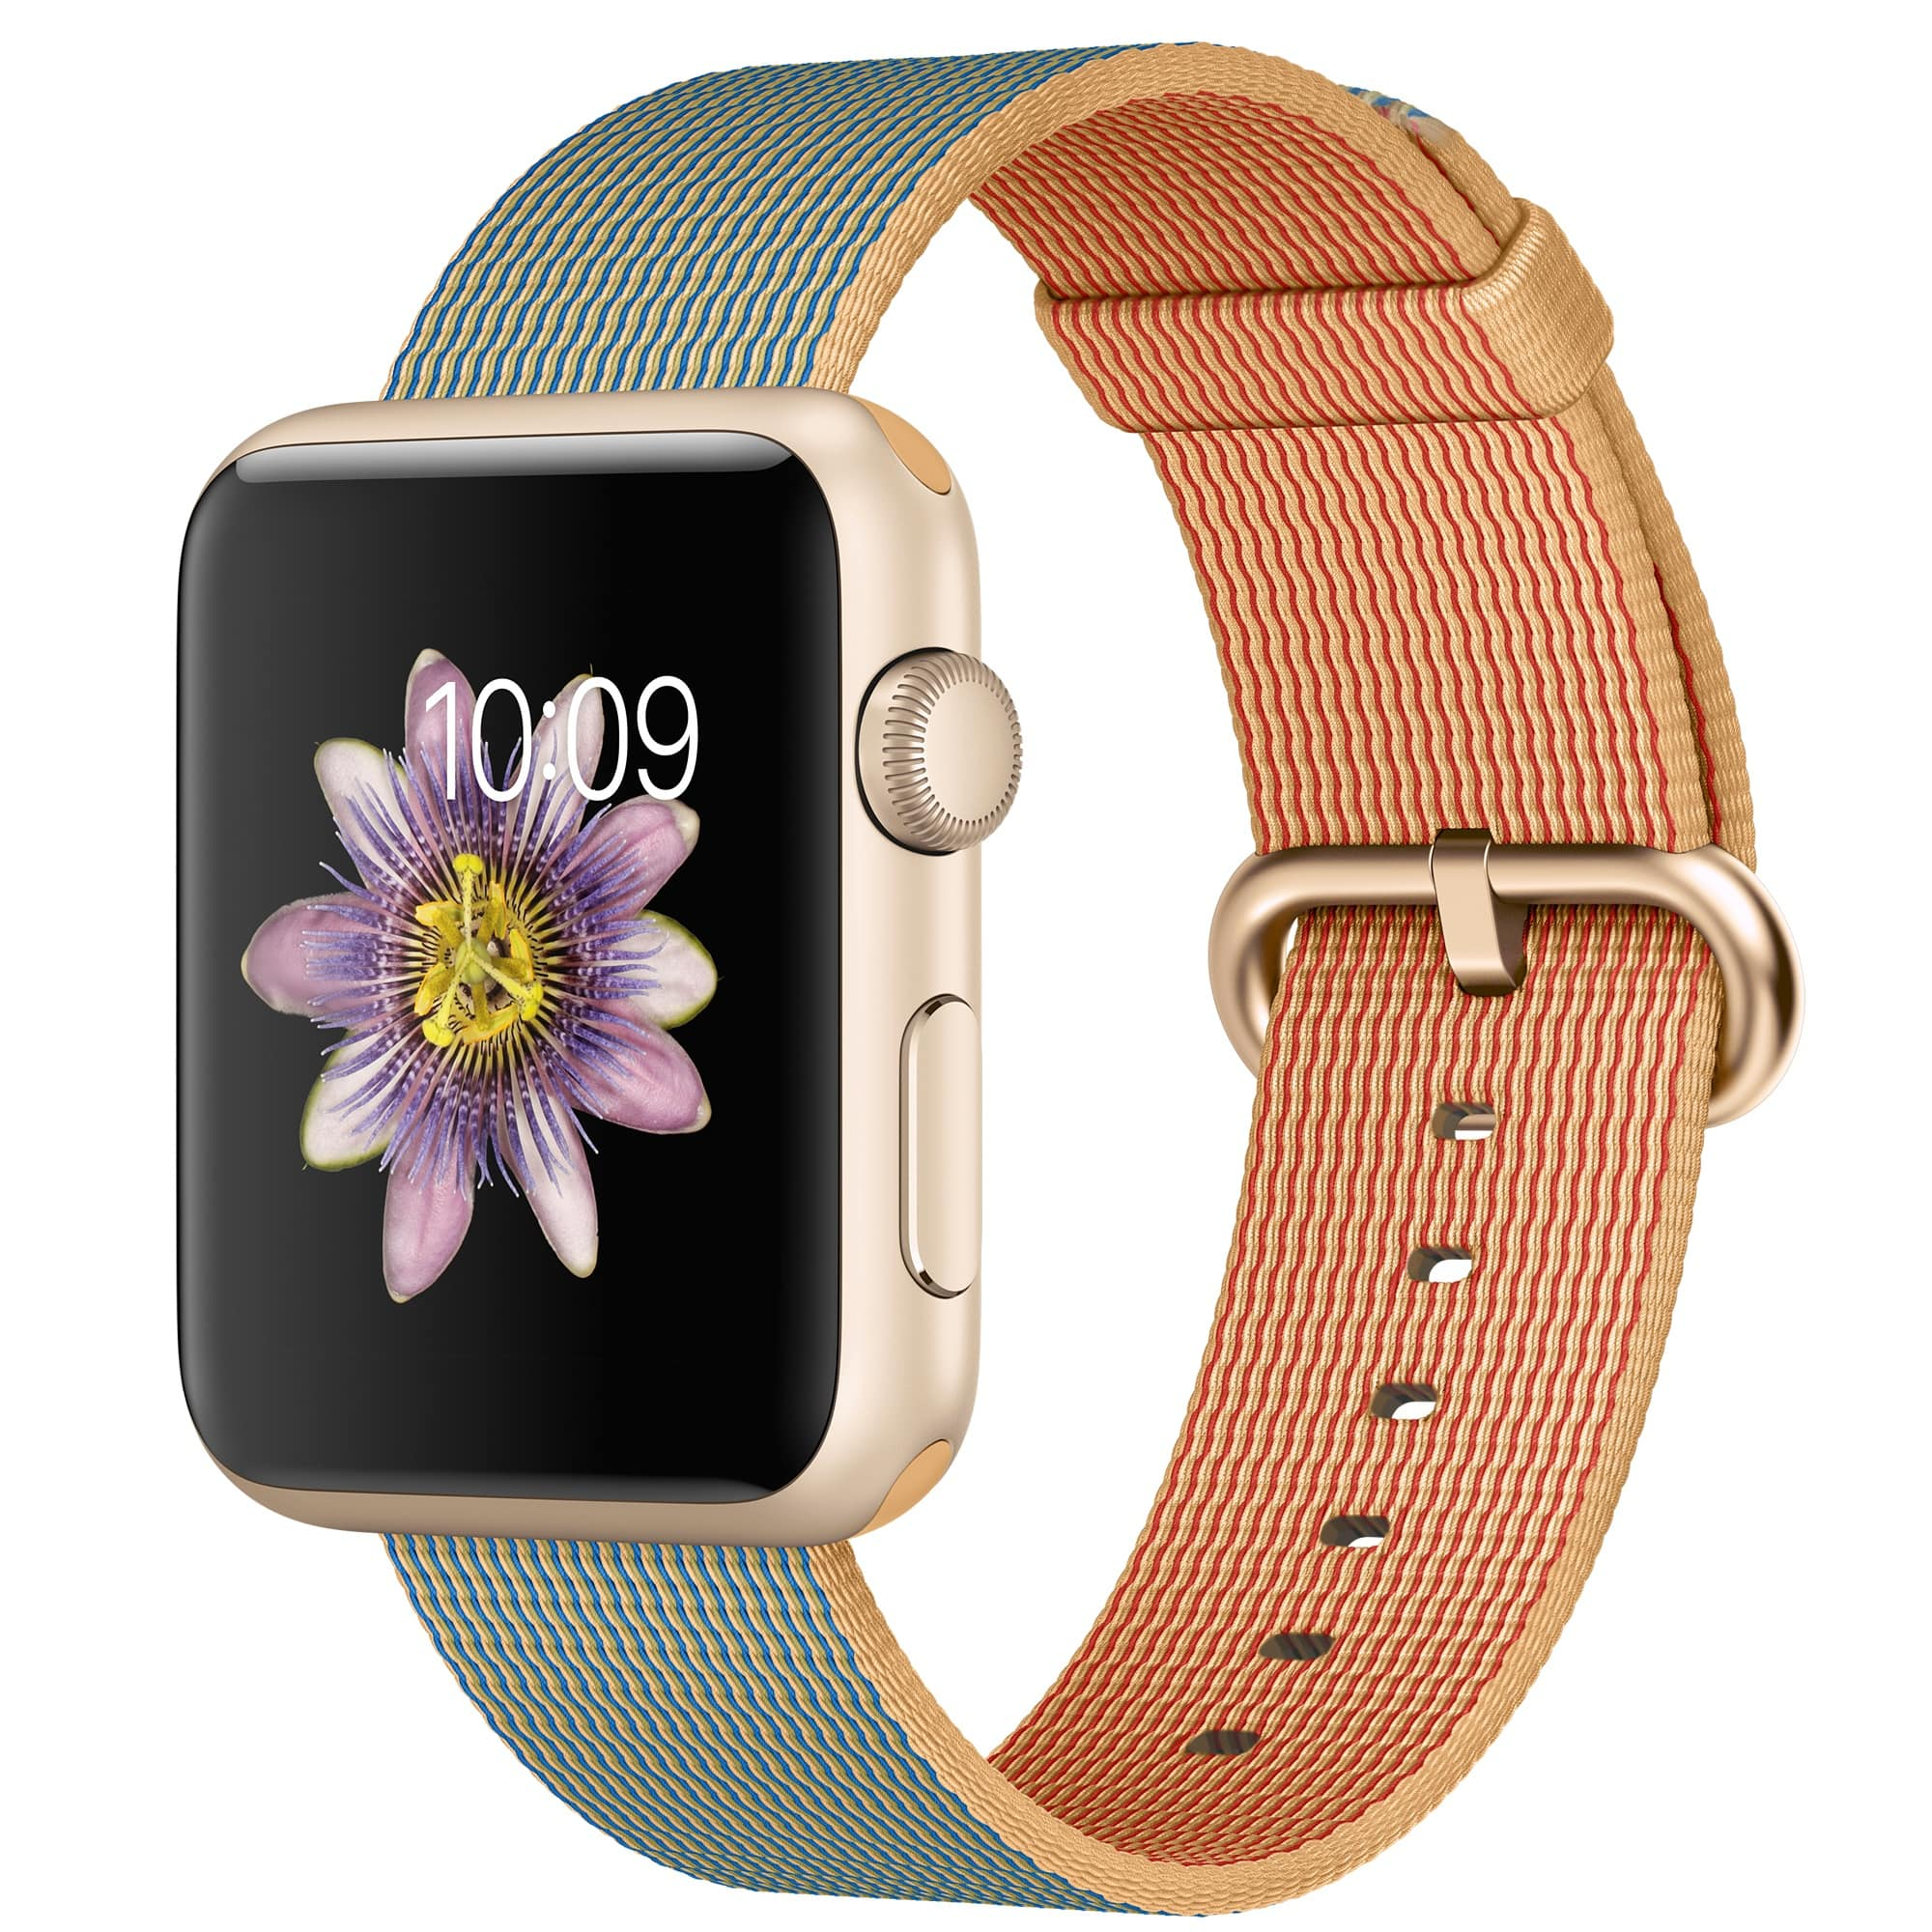 Apple Watch Sport für 399,00 Euro